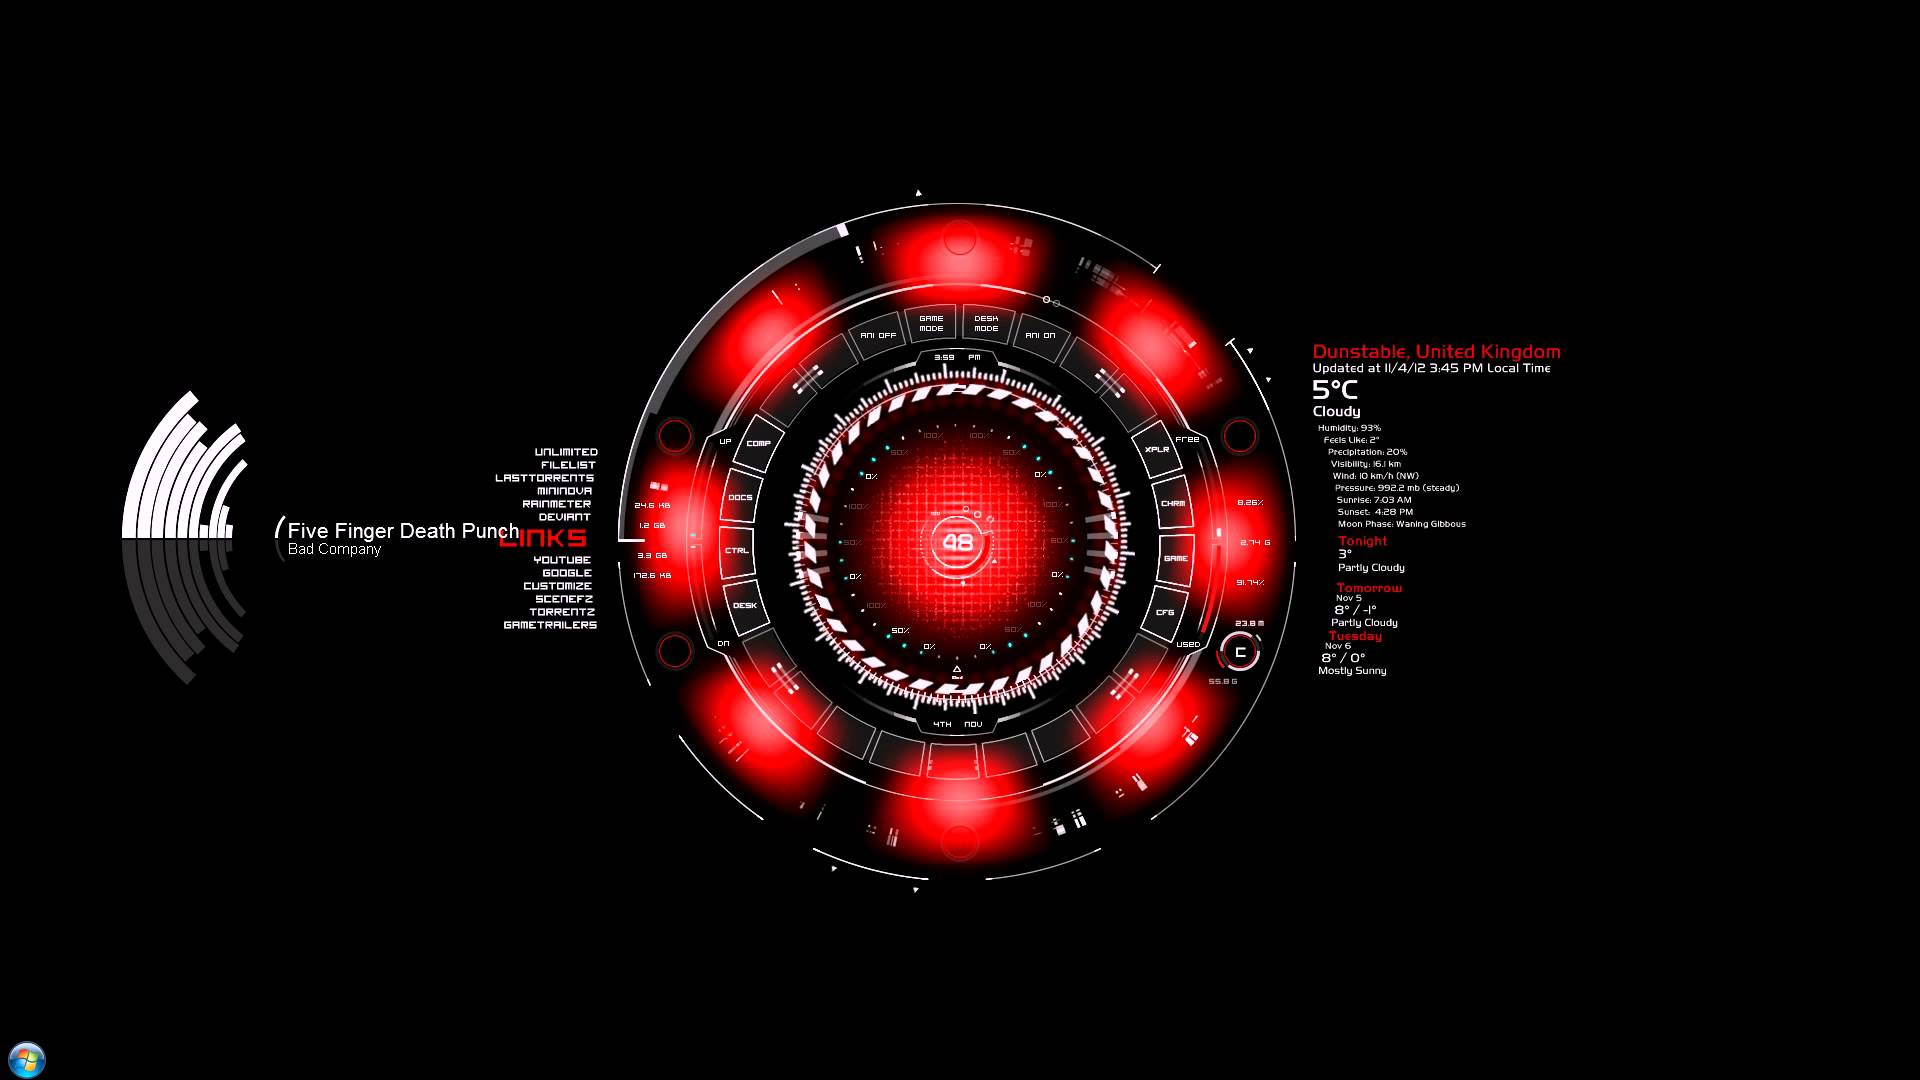 Animated 3d wallpaper jarvis interface - Animation Movie Superheroes Wallpaper Jarvis Wallpapers High